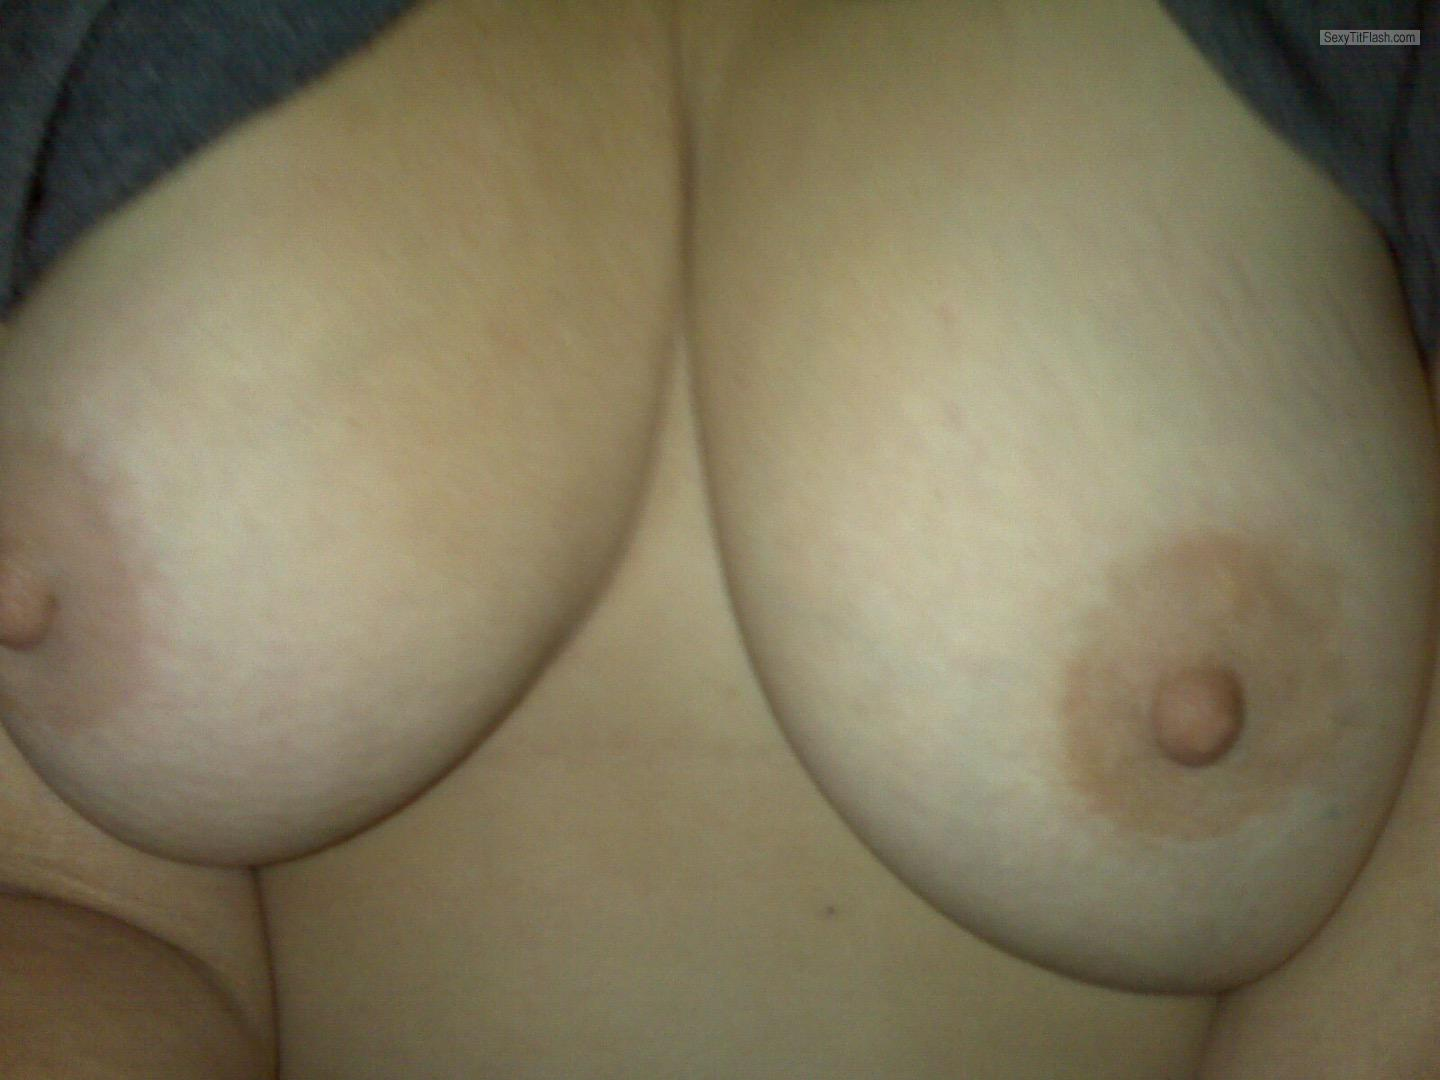 Tit Flash: My Medium Tits (Selfie) - New Orleans Lady from United States